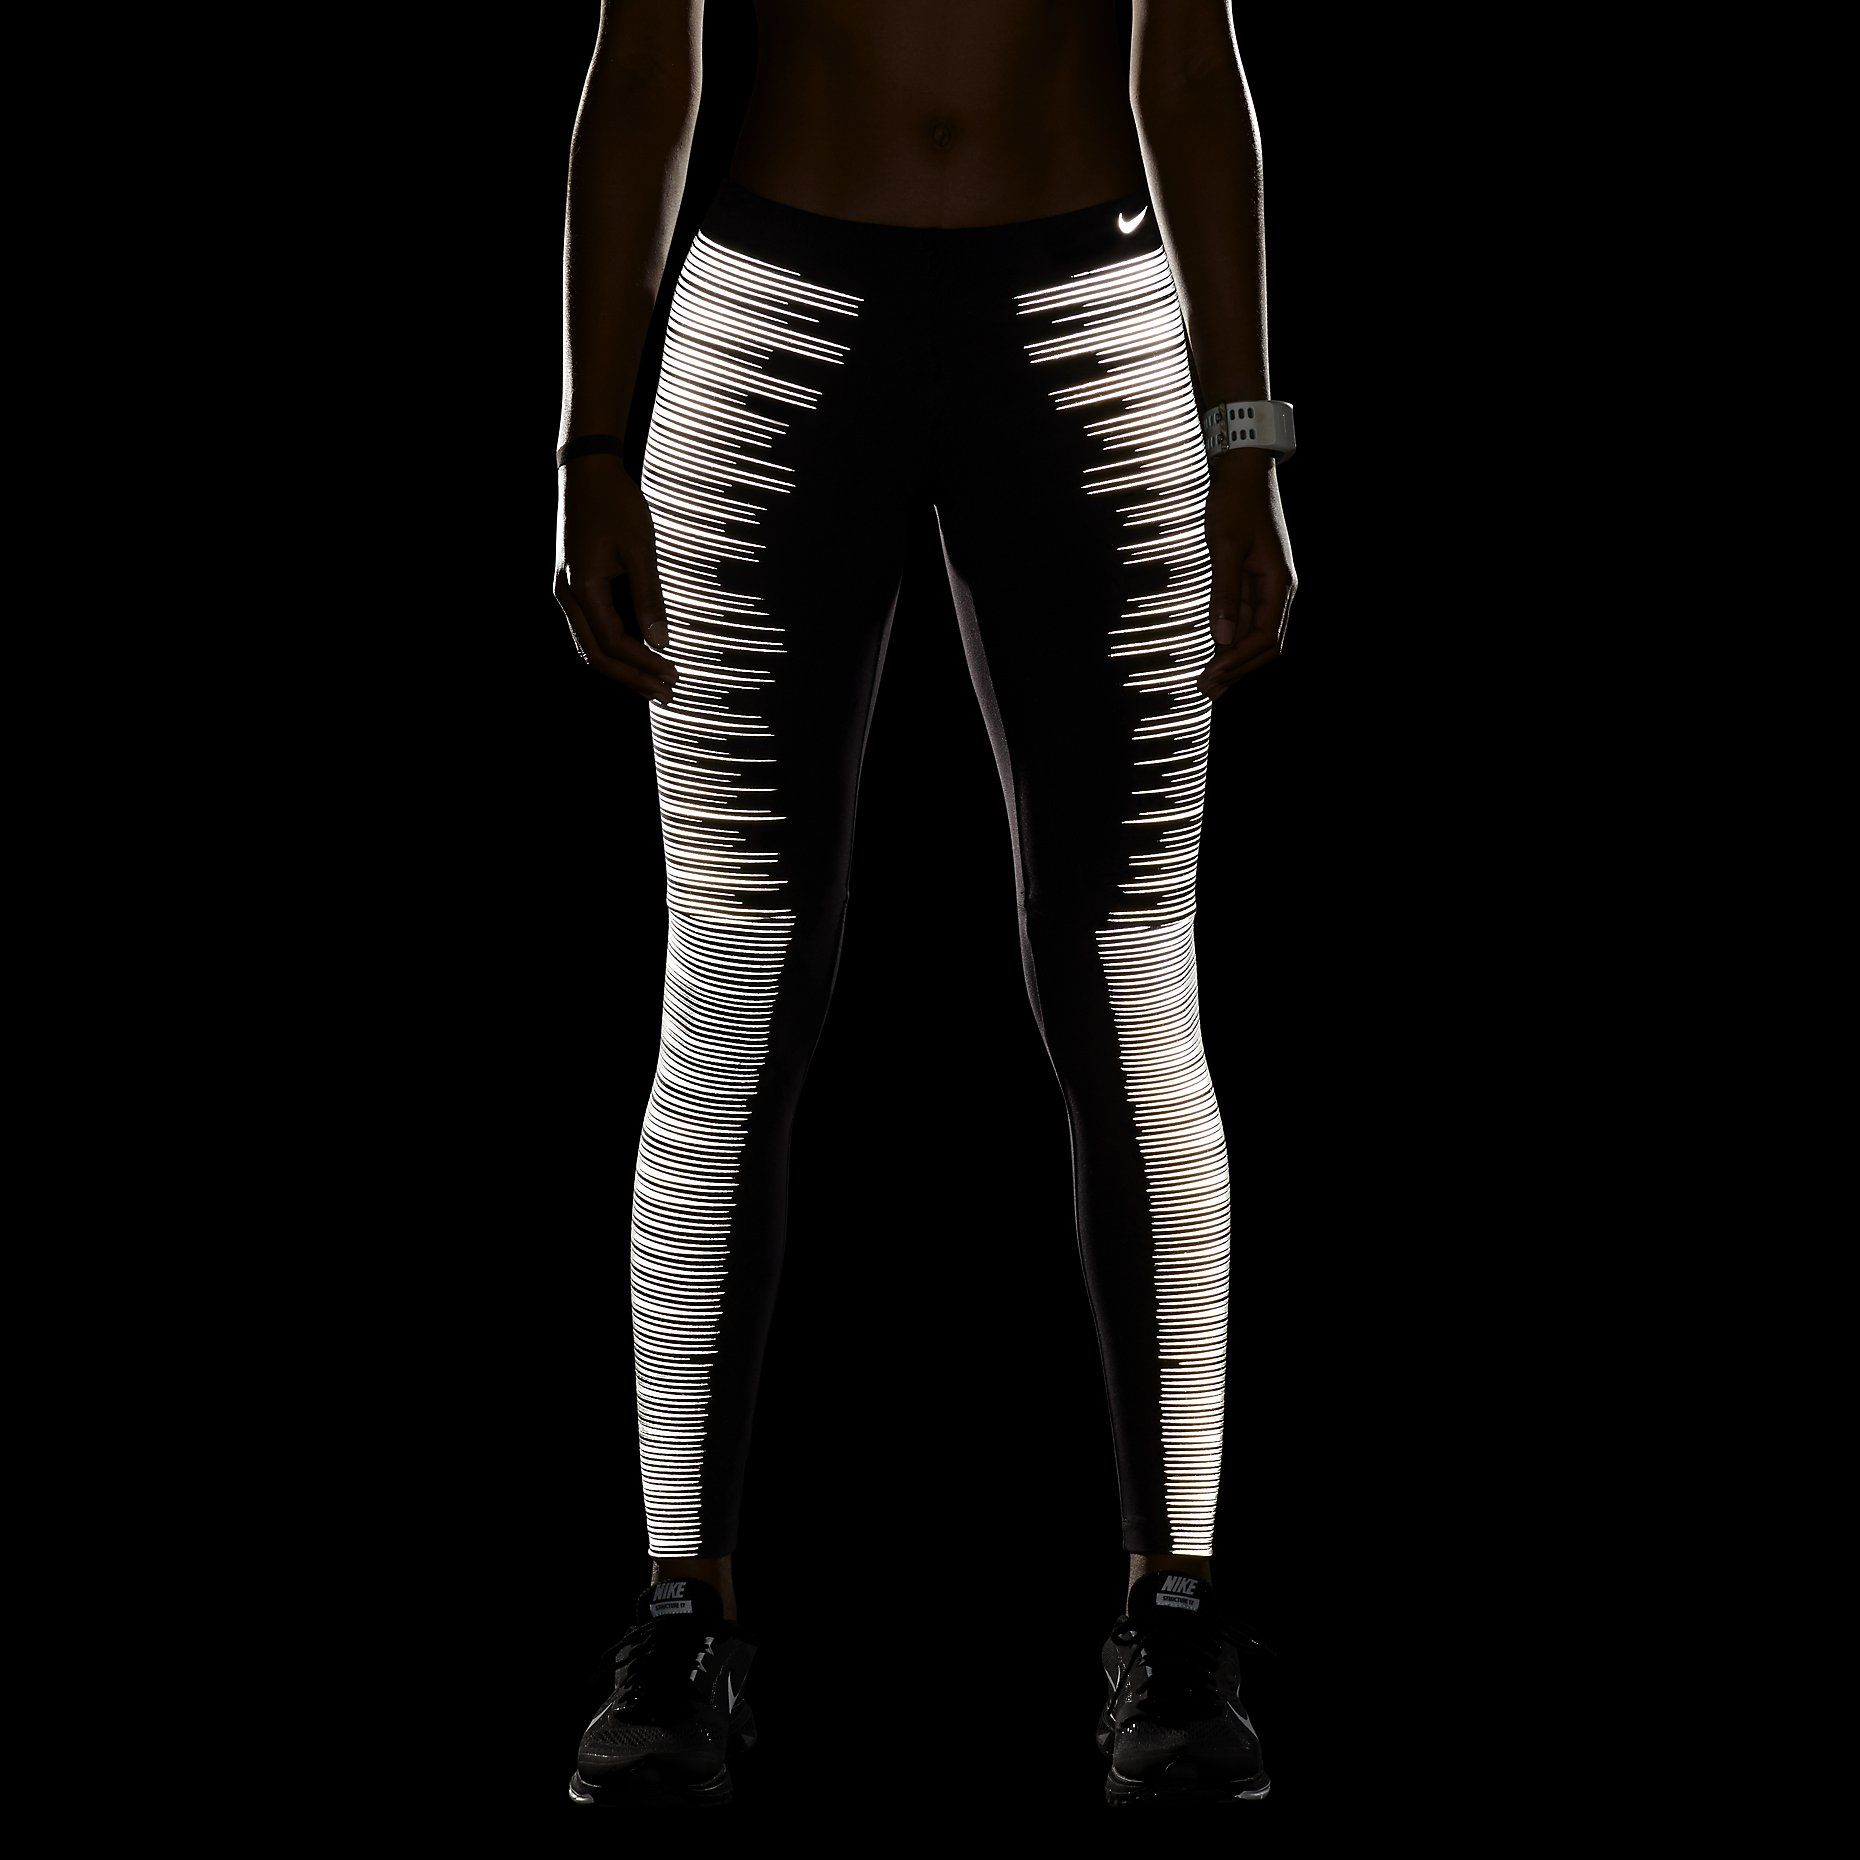 Nike jacket glow in the dark - How Cool Is This Reflective Running Tights Nike Flash Women S Running Tights